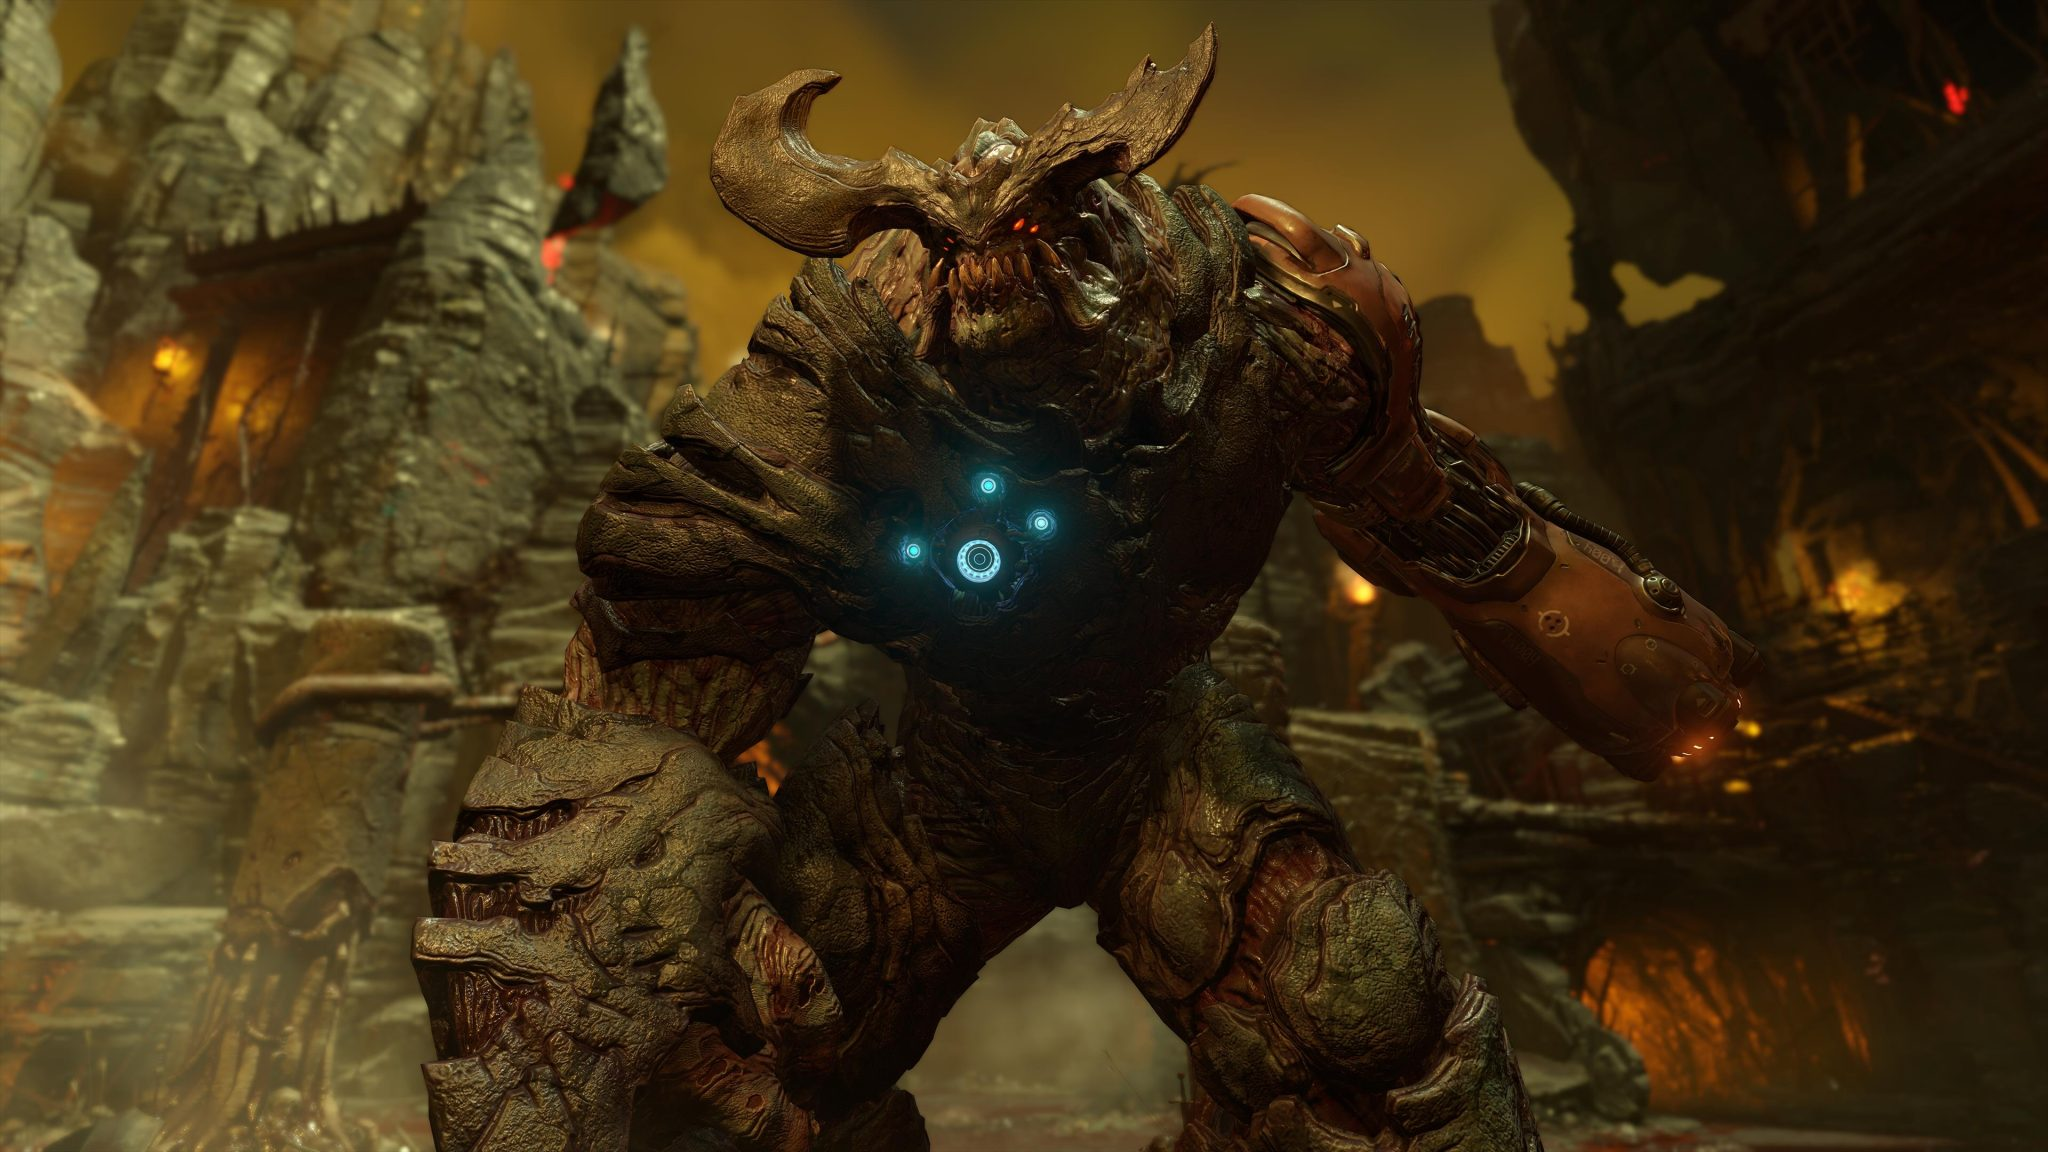 Six Doom screenshots released